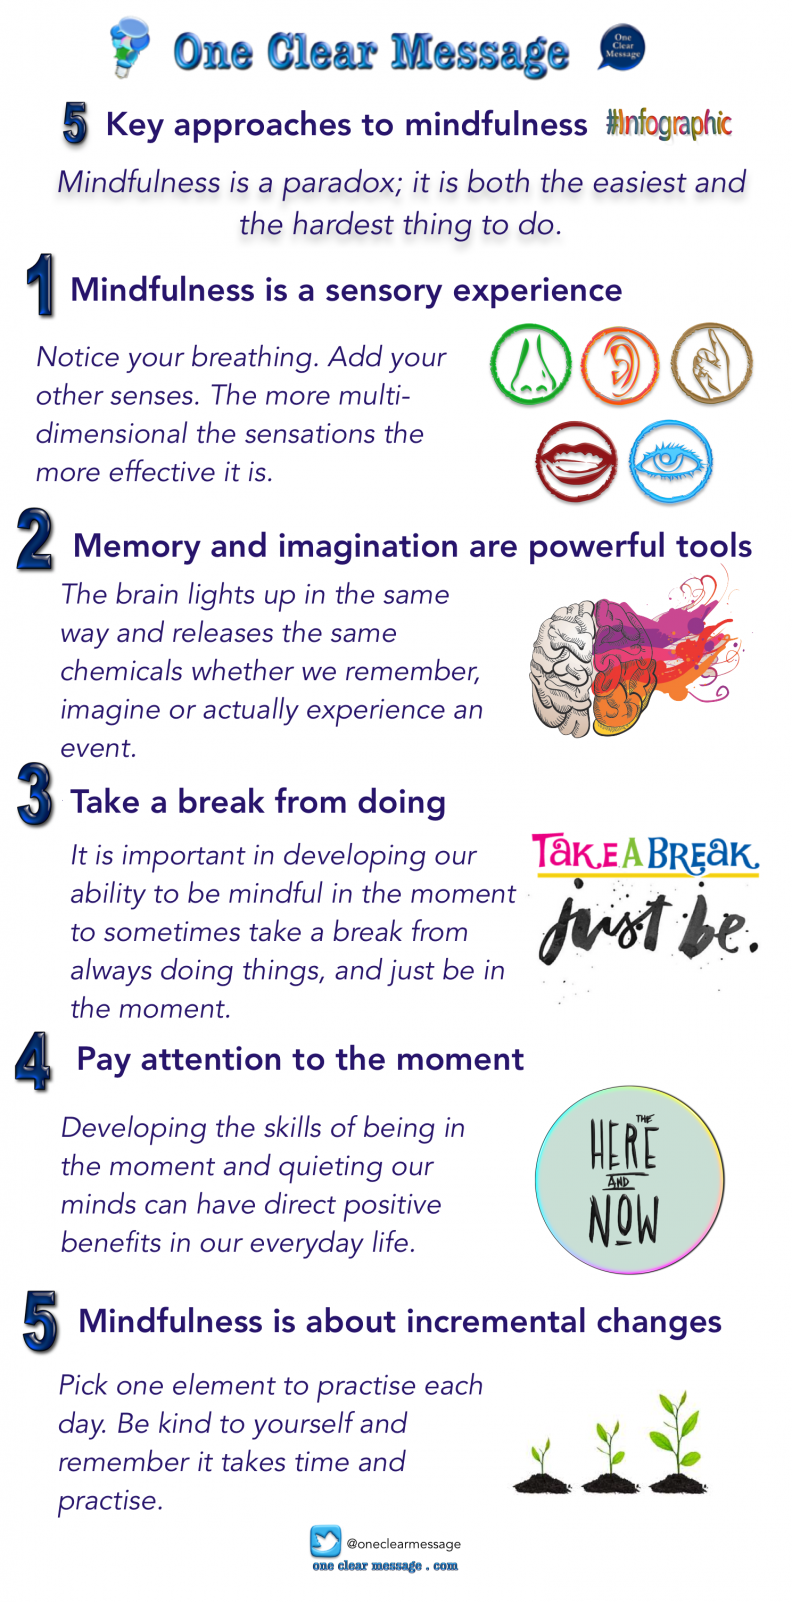 5-Key-approaches-to-mindfulness #Infographic